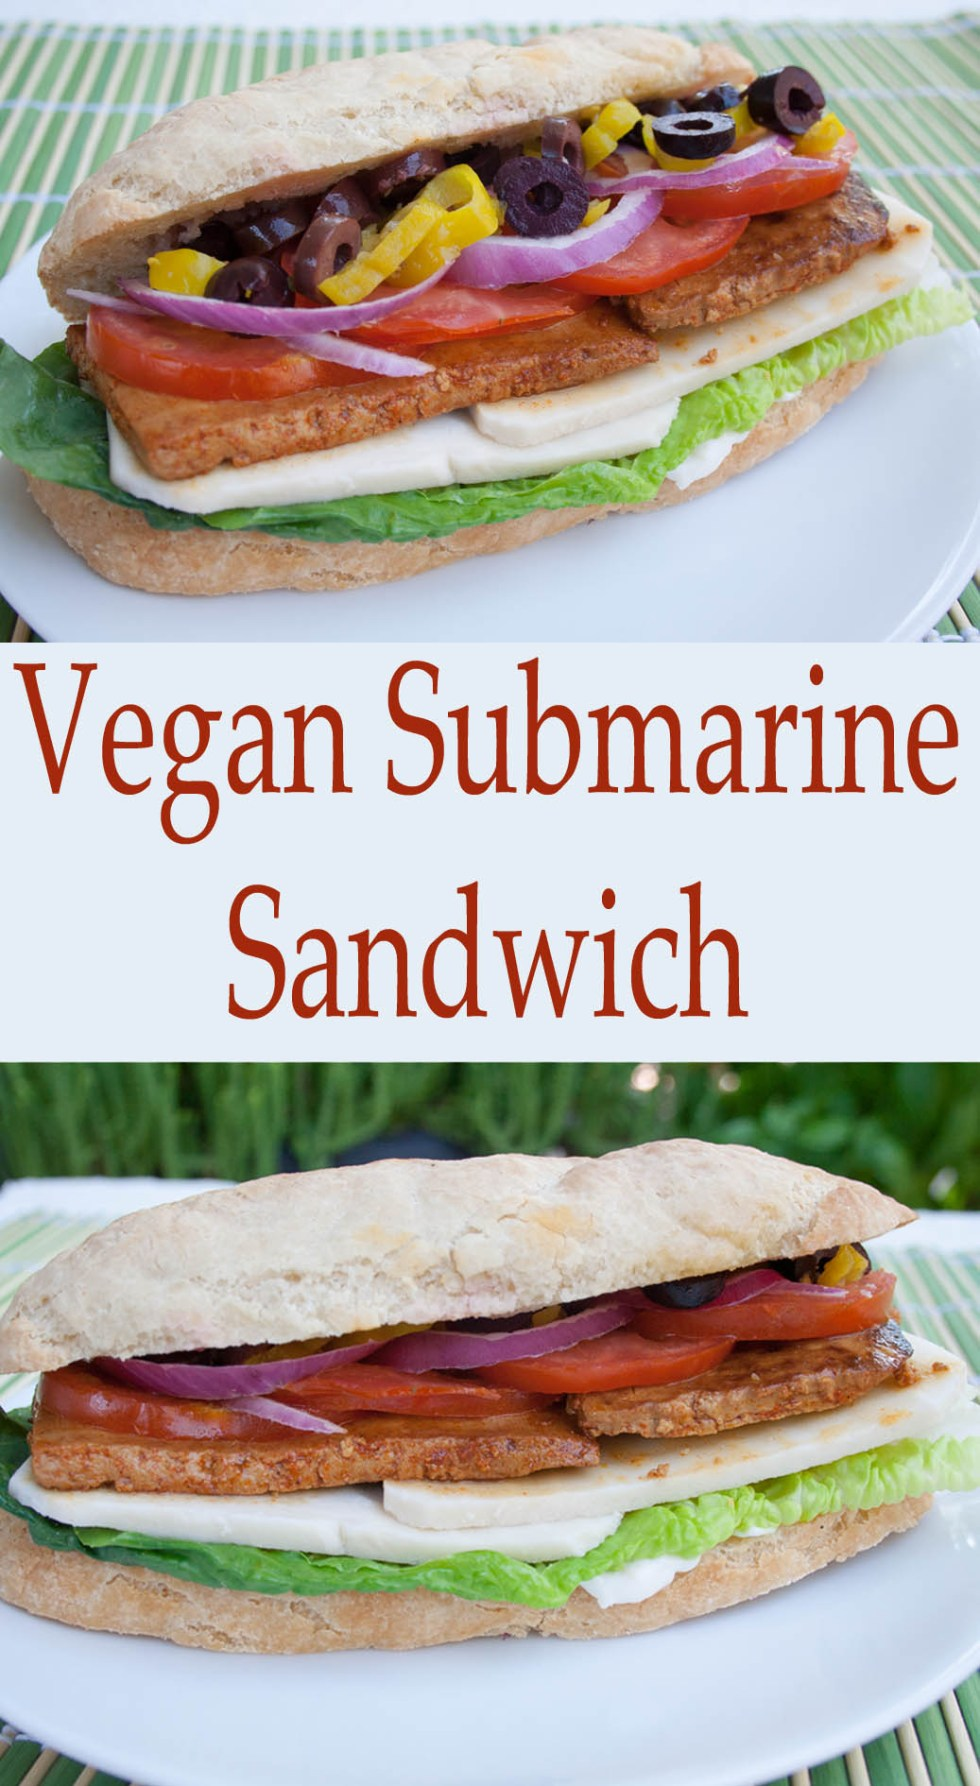 Vegan Submarine Sandwich (gluten free) - This smoky, savory sub will hit the spot when you are craving a hearty sandwich!